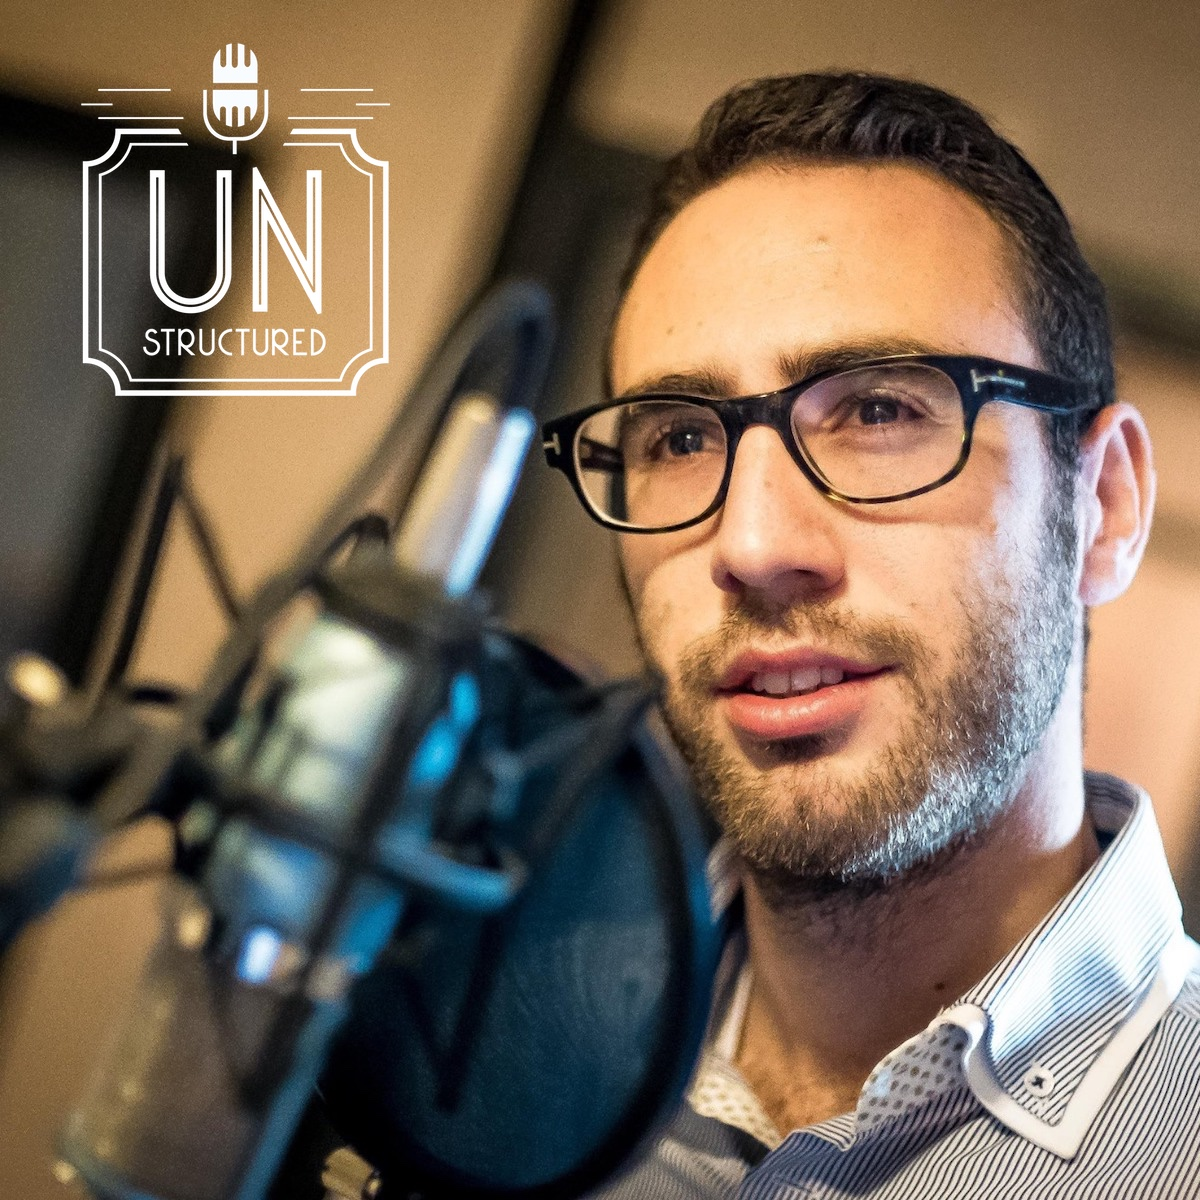 038 - Daniel Gefen - Unique wide-ranging and well-researched unstructured interviews hosted by Eric Hunley UnstructuredPod Dynamic Informal Conversations